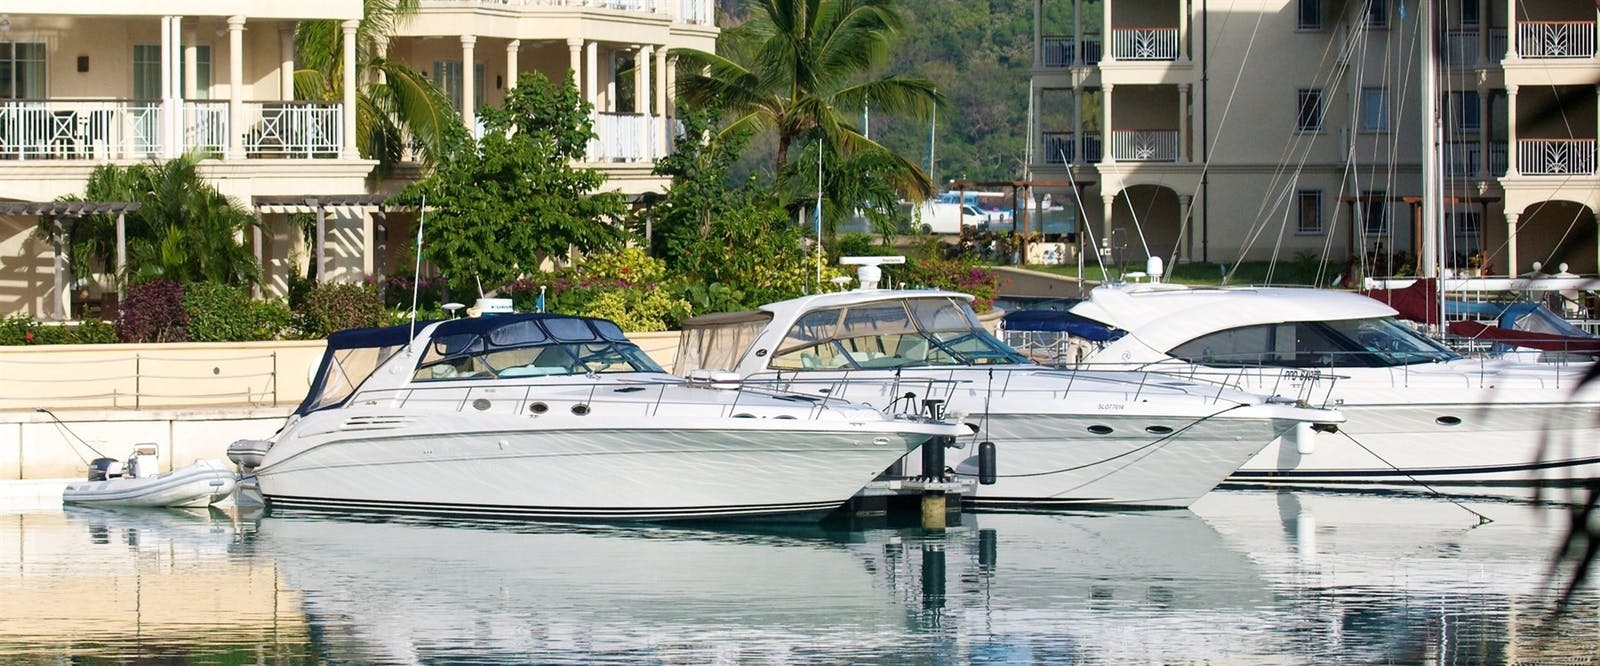 Marina at The Landings Resort and Spa by Elegant Hotels, St Lucia